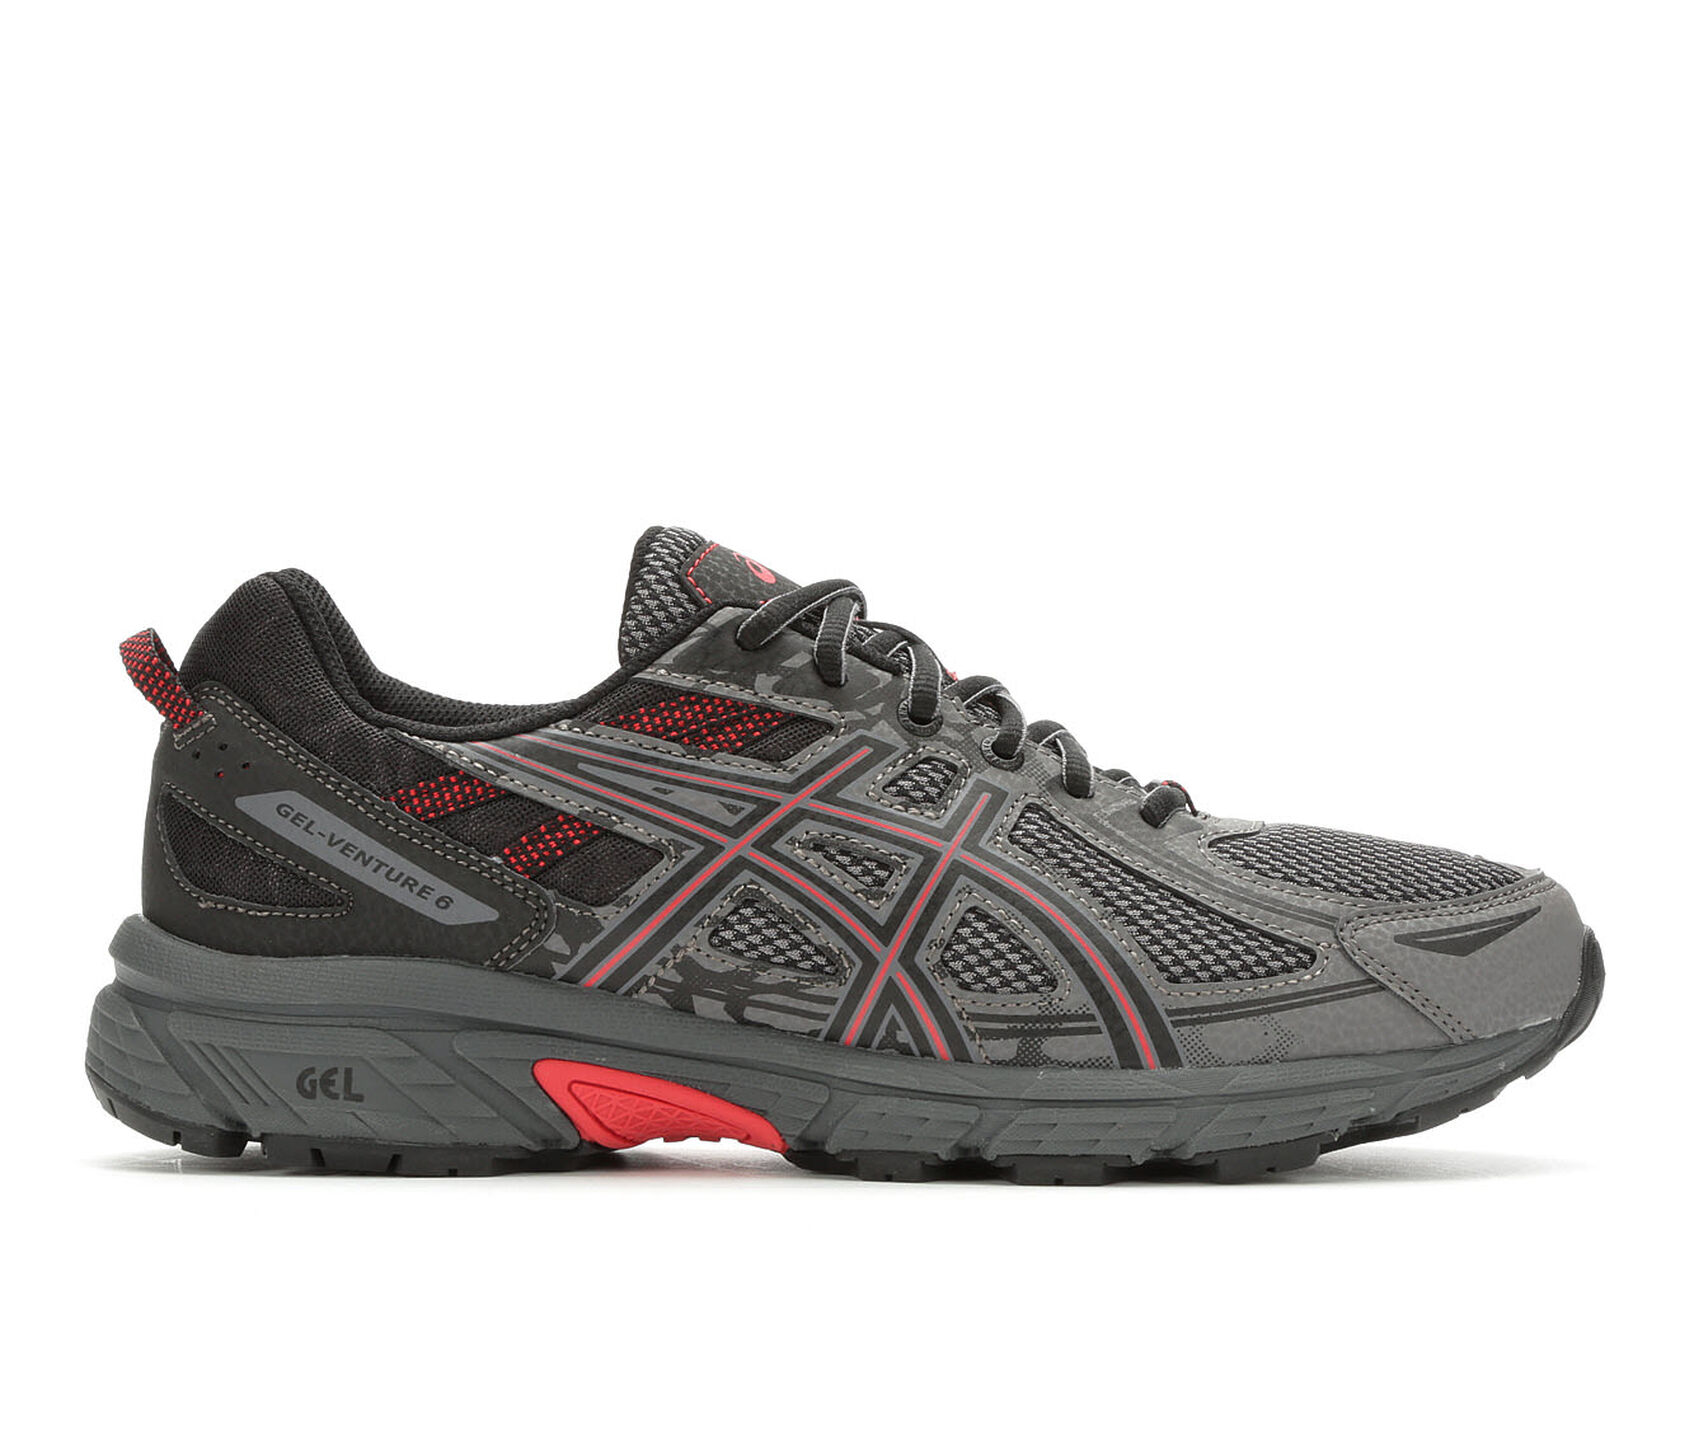 f5aefa67c9d ... ASICS Gel Venture 6 Trail Running Shoes. Previous